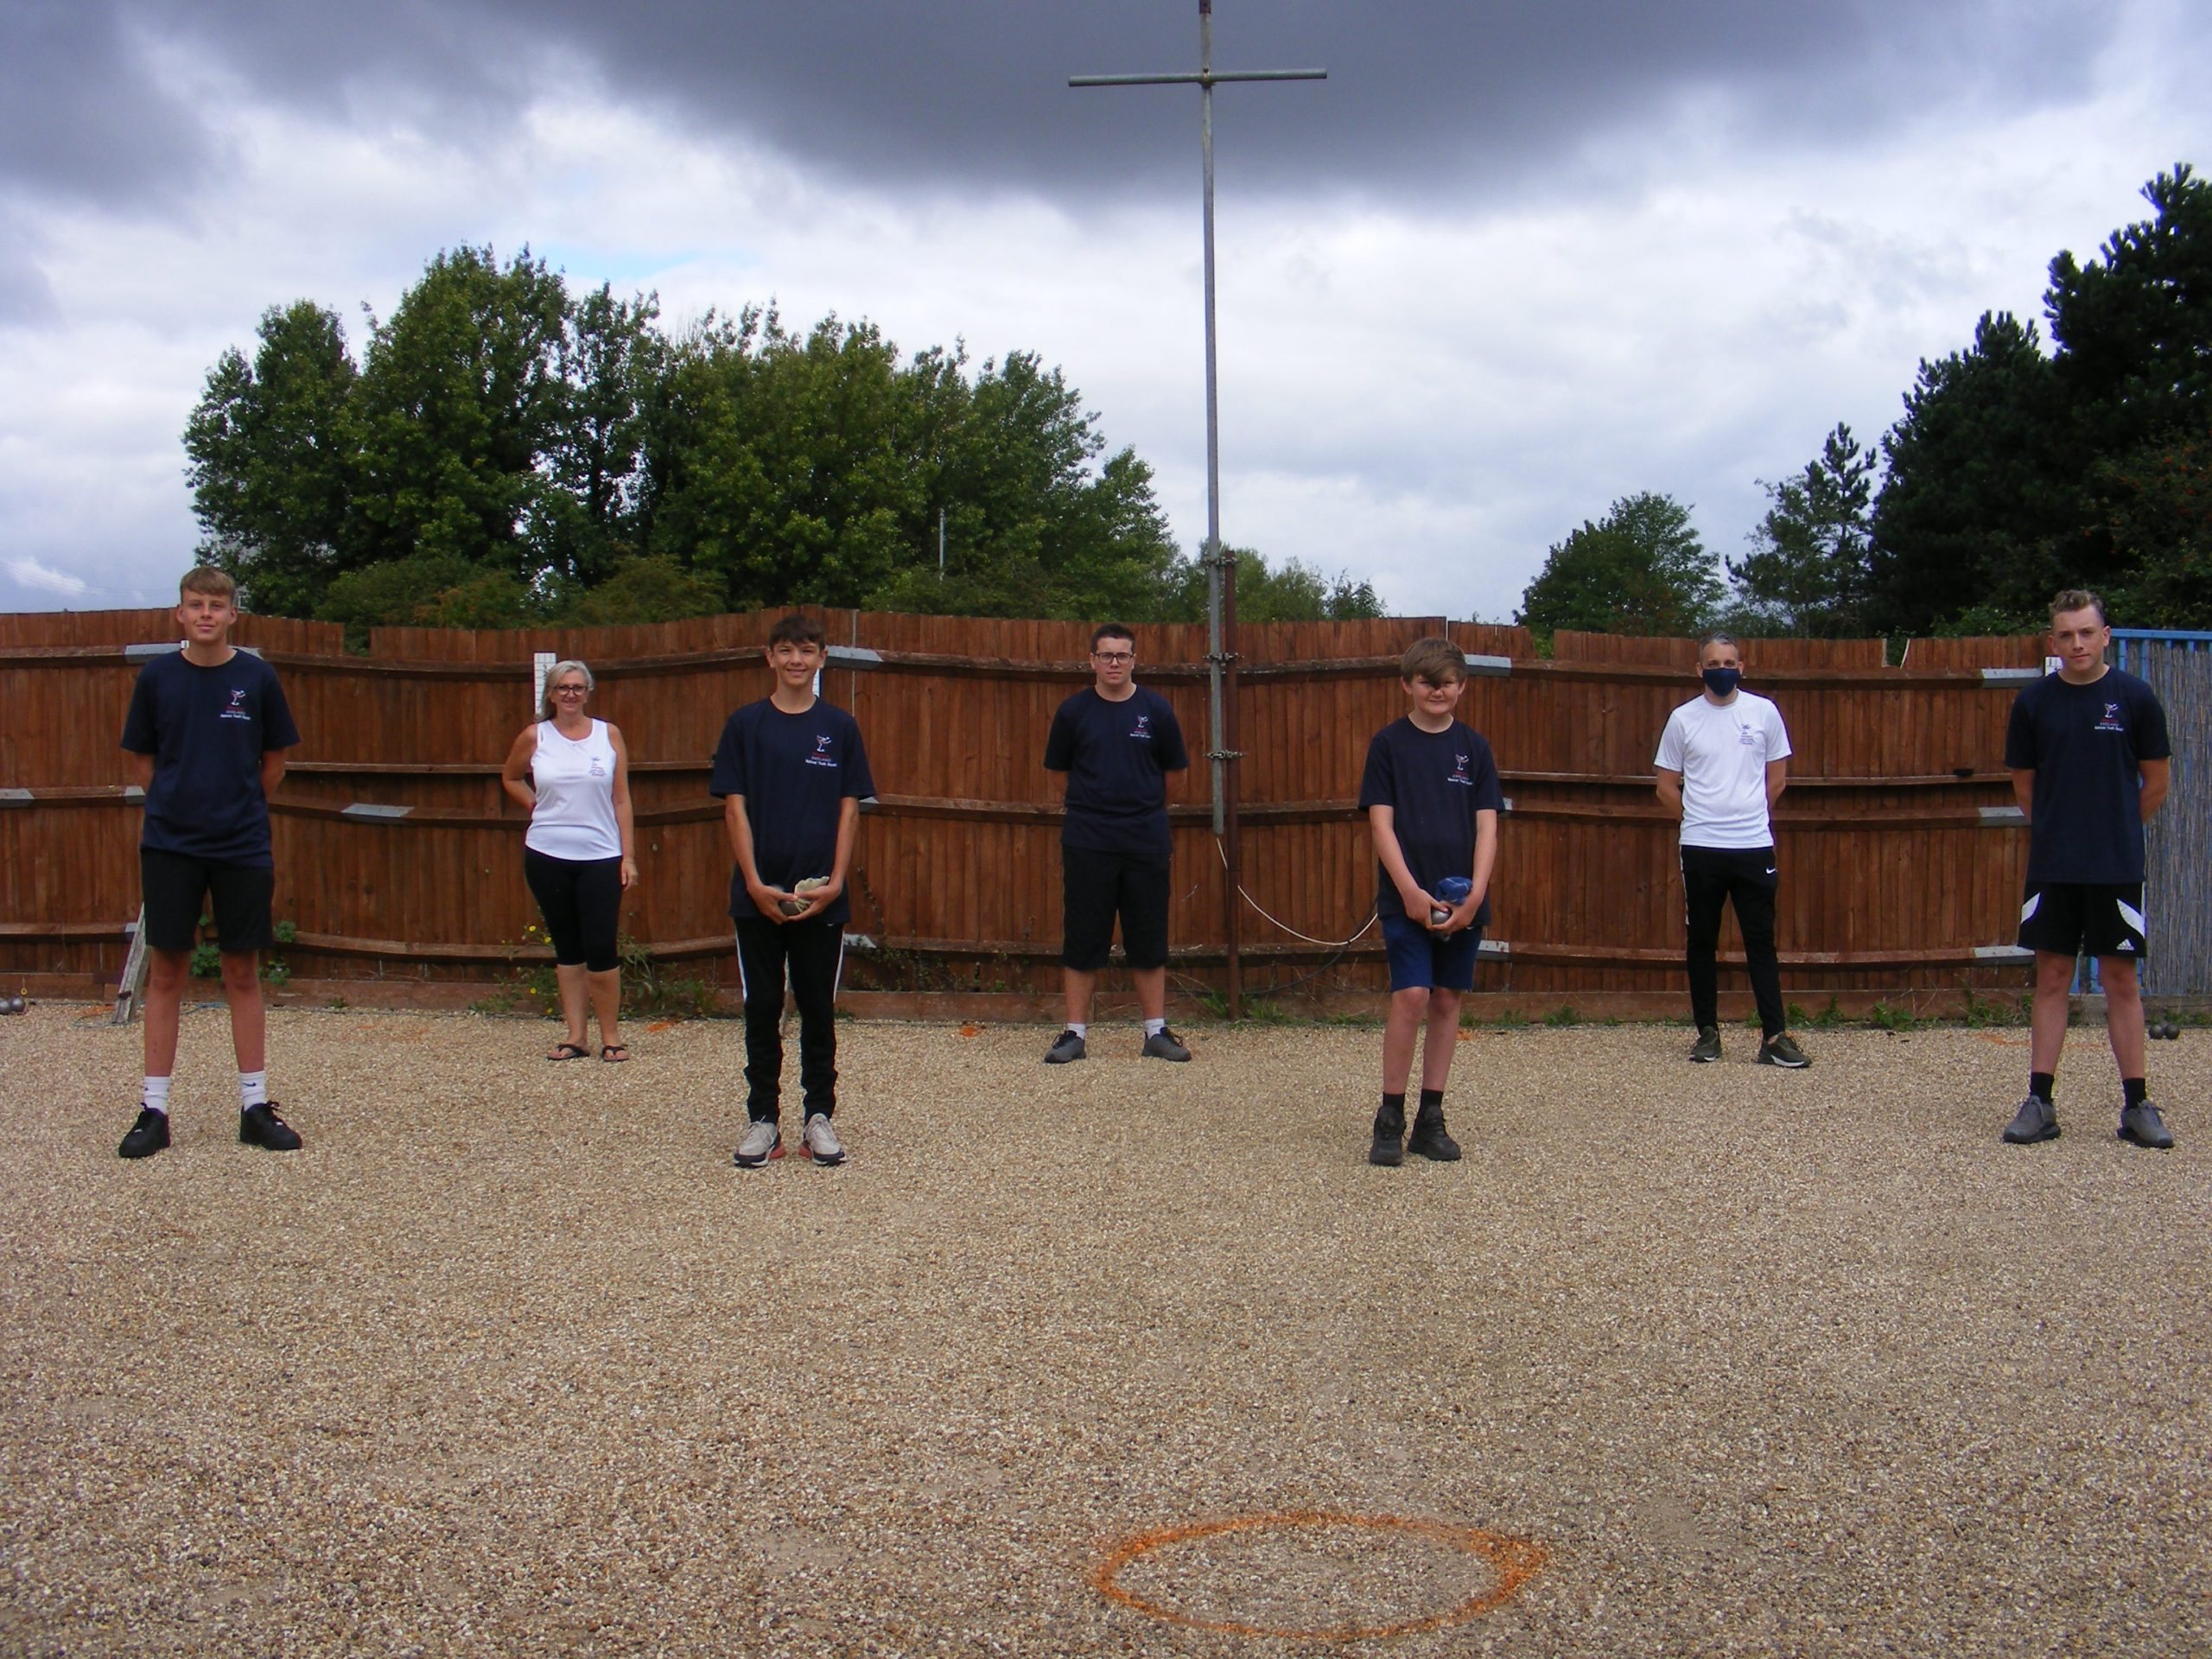 https://www.petanque-england.uk/wp-content/uploads/2020/09/DSCF4812-scaled.jpg